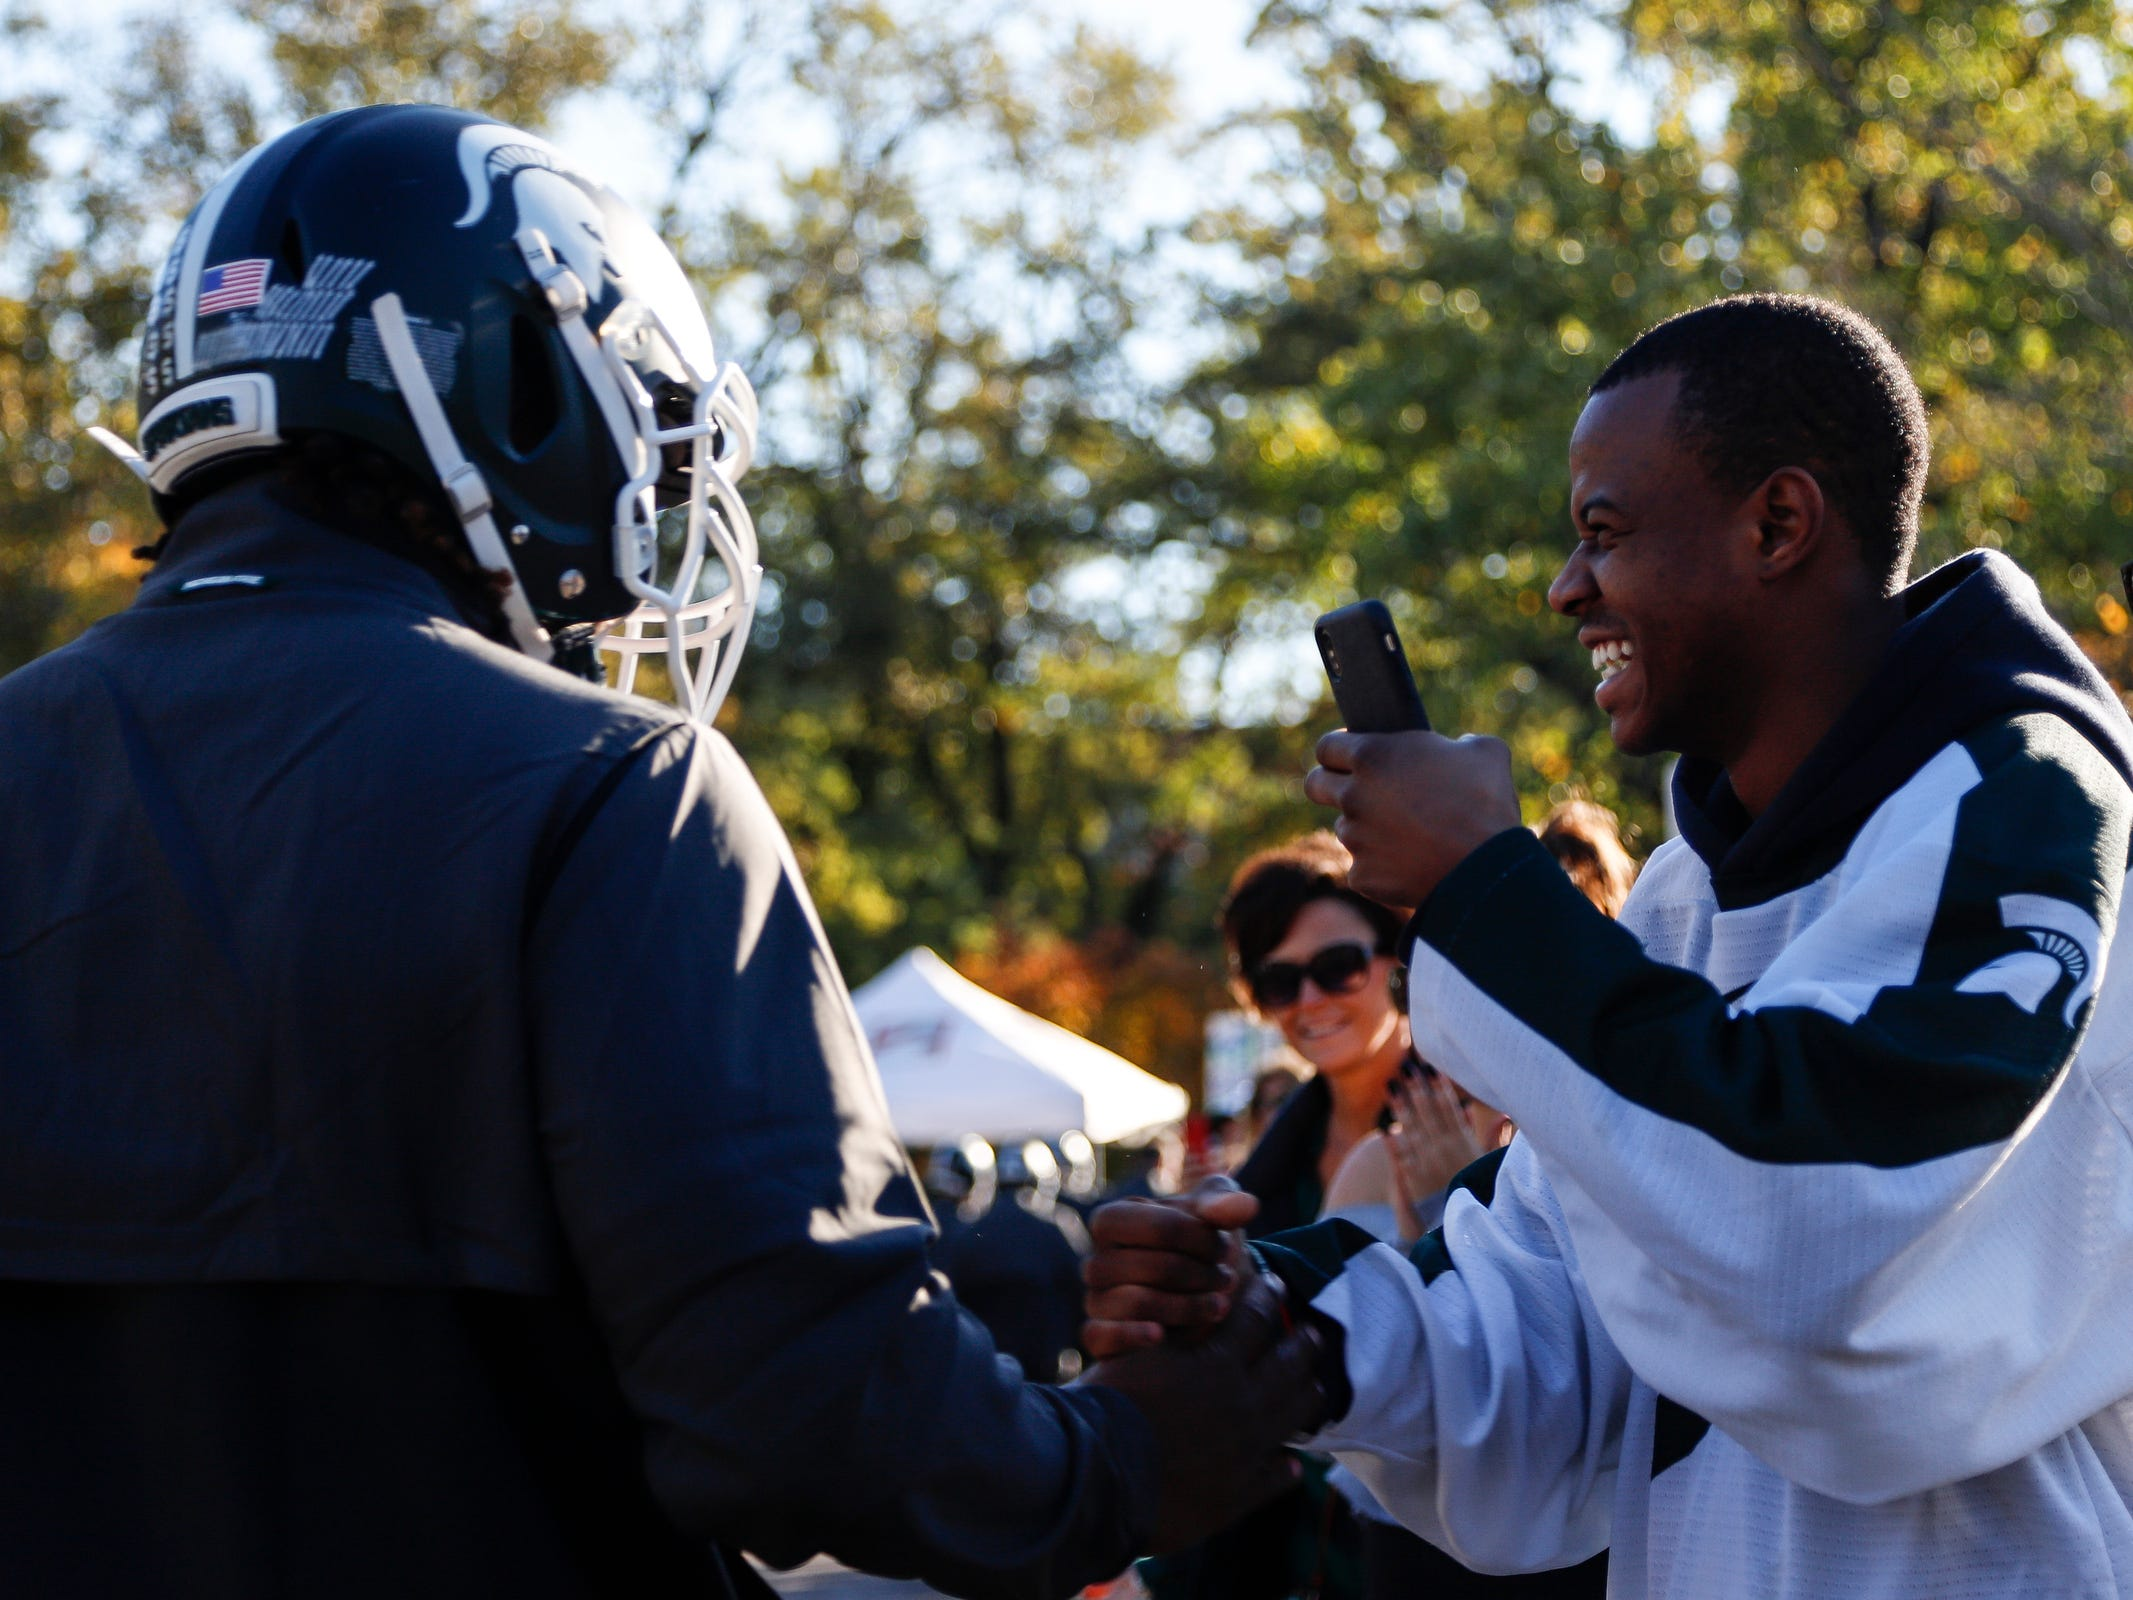 Keante Pendleton, right, shakes hands with his brother, Michigan State defensive tackle Raequan Williams, outside of the Spartan Stadium in East Lansing before the Michigan game on Sat., October 20, 2018.